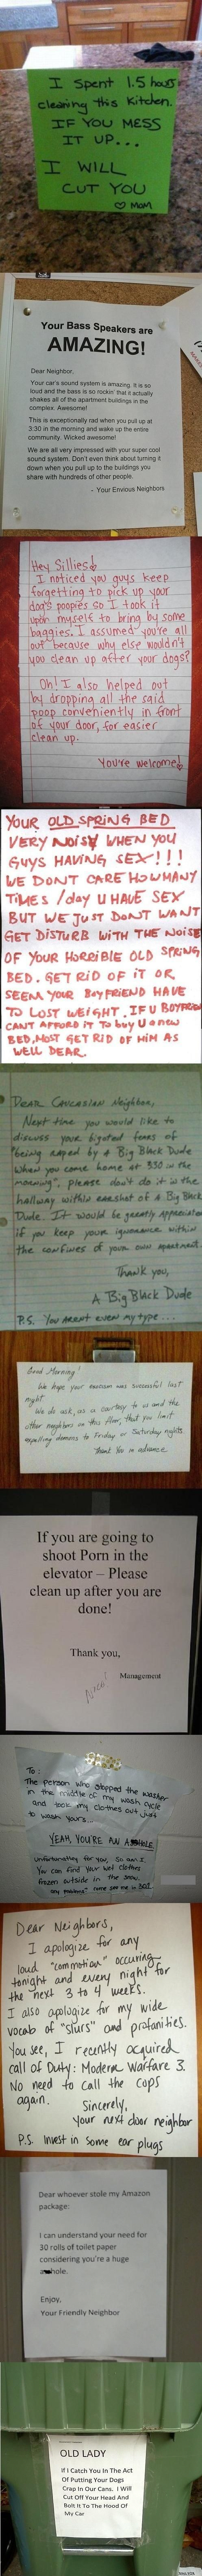 Dear Neighbor.  Funny signs left for annoying neighbors.